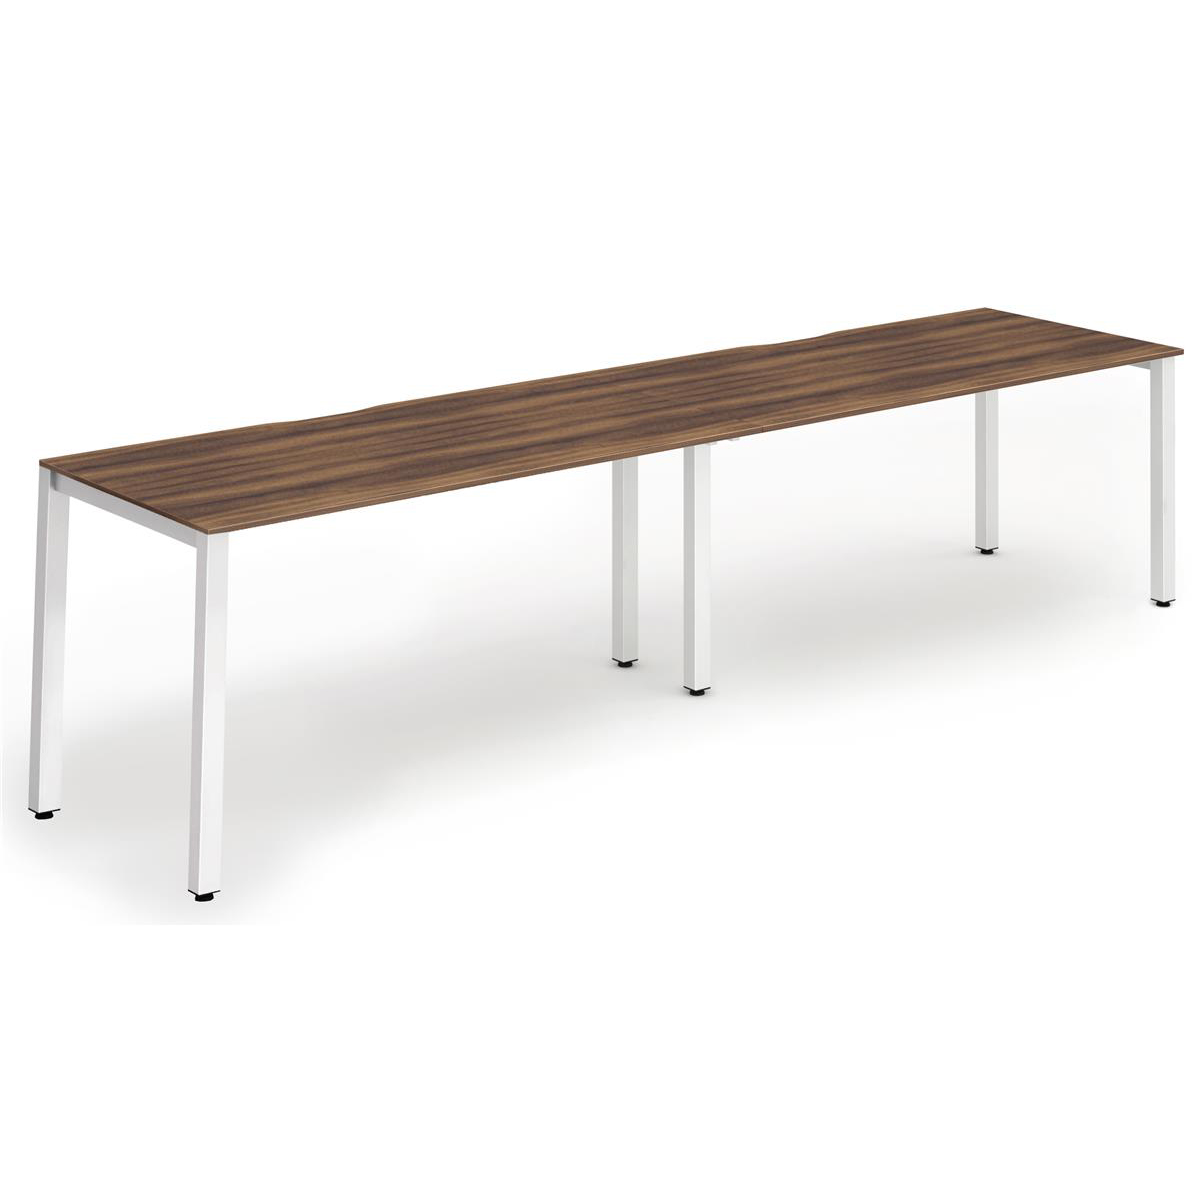 Trexus Bench Desk 2 Person Side to Side Configuration White Leg 3200x800mm Walnut Ref BE349